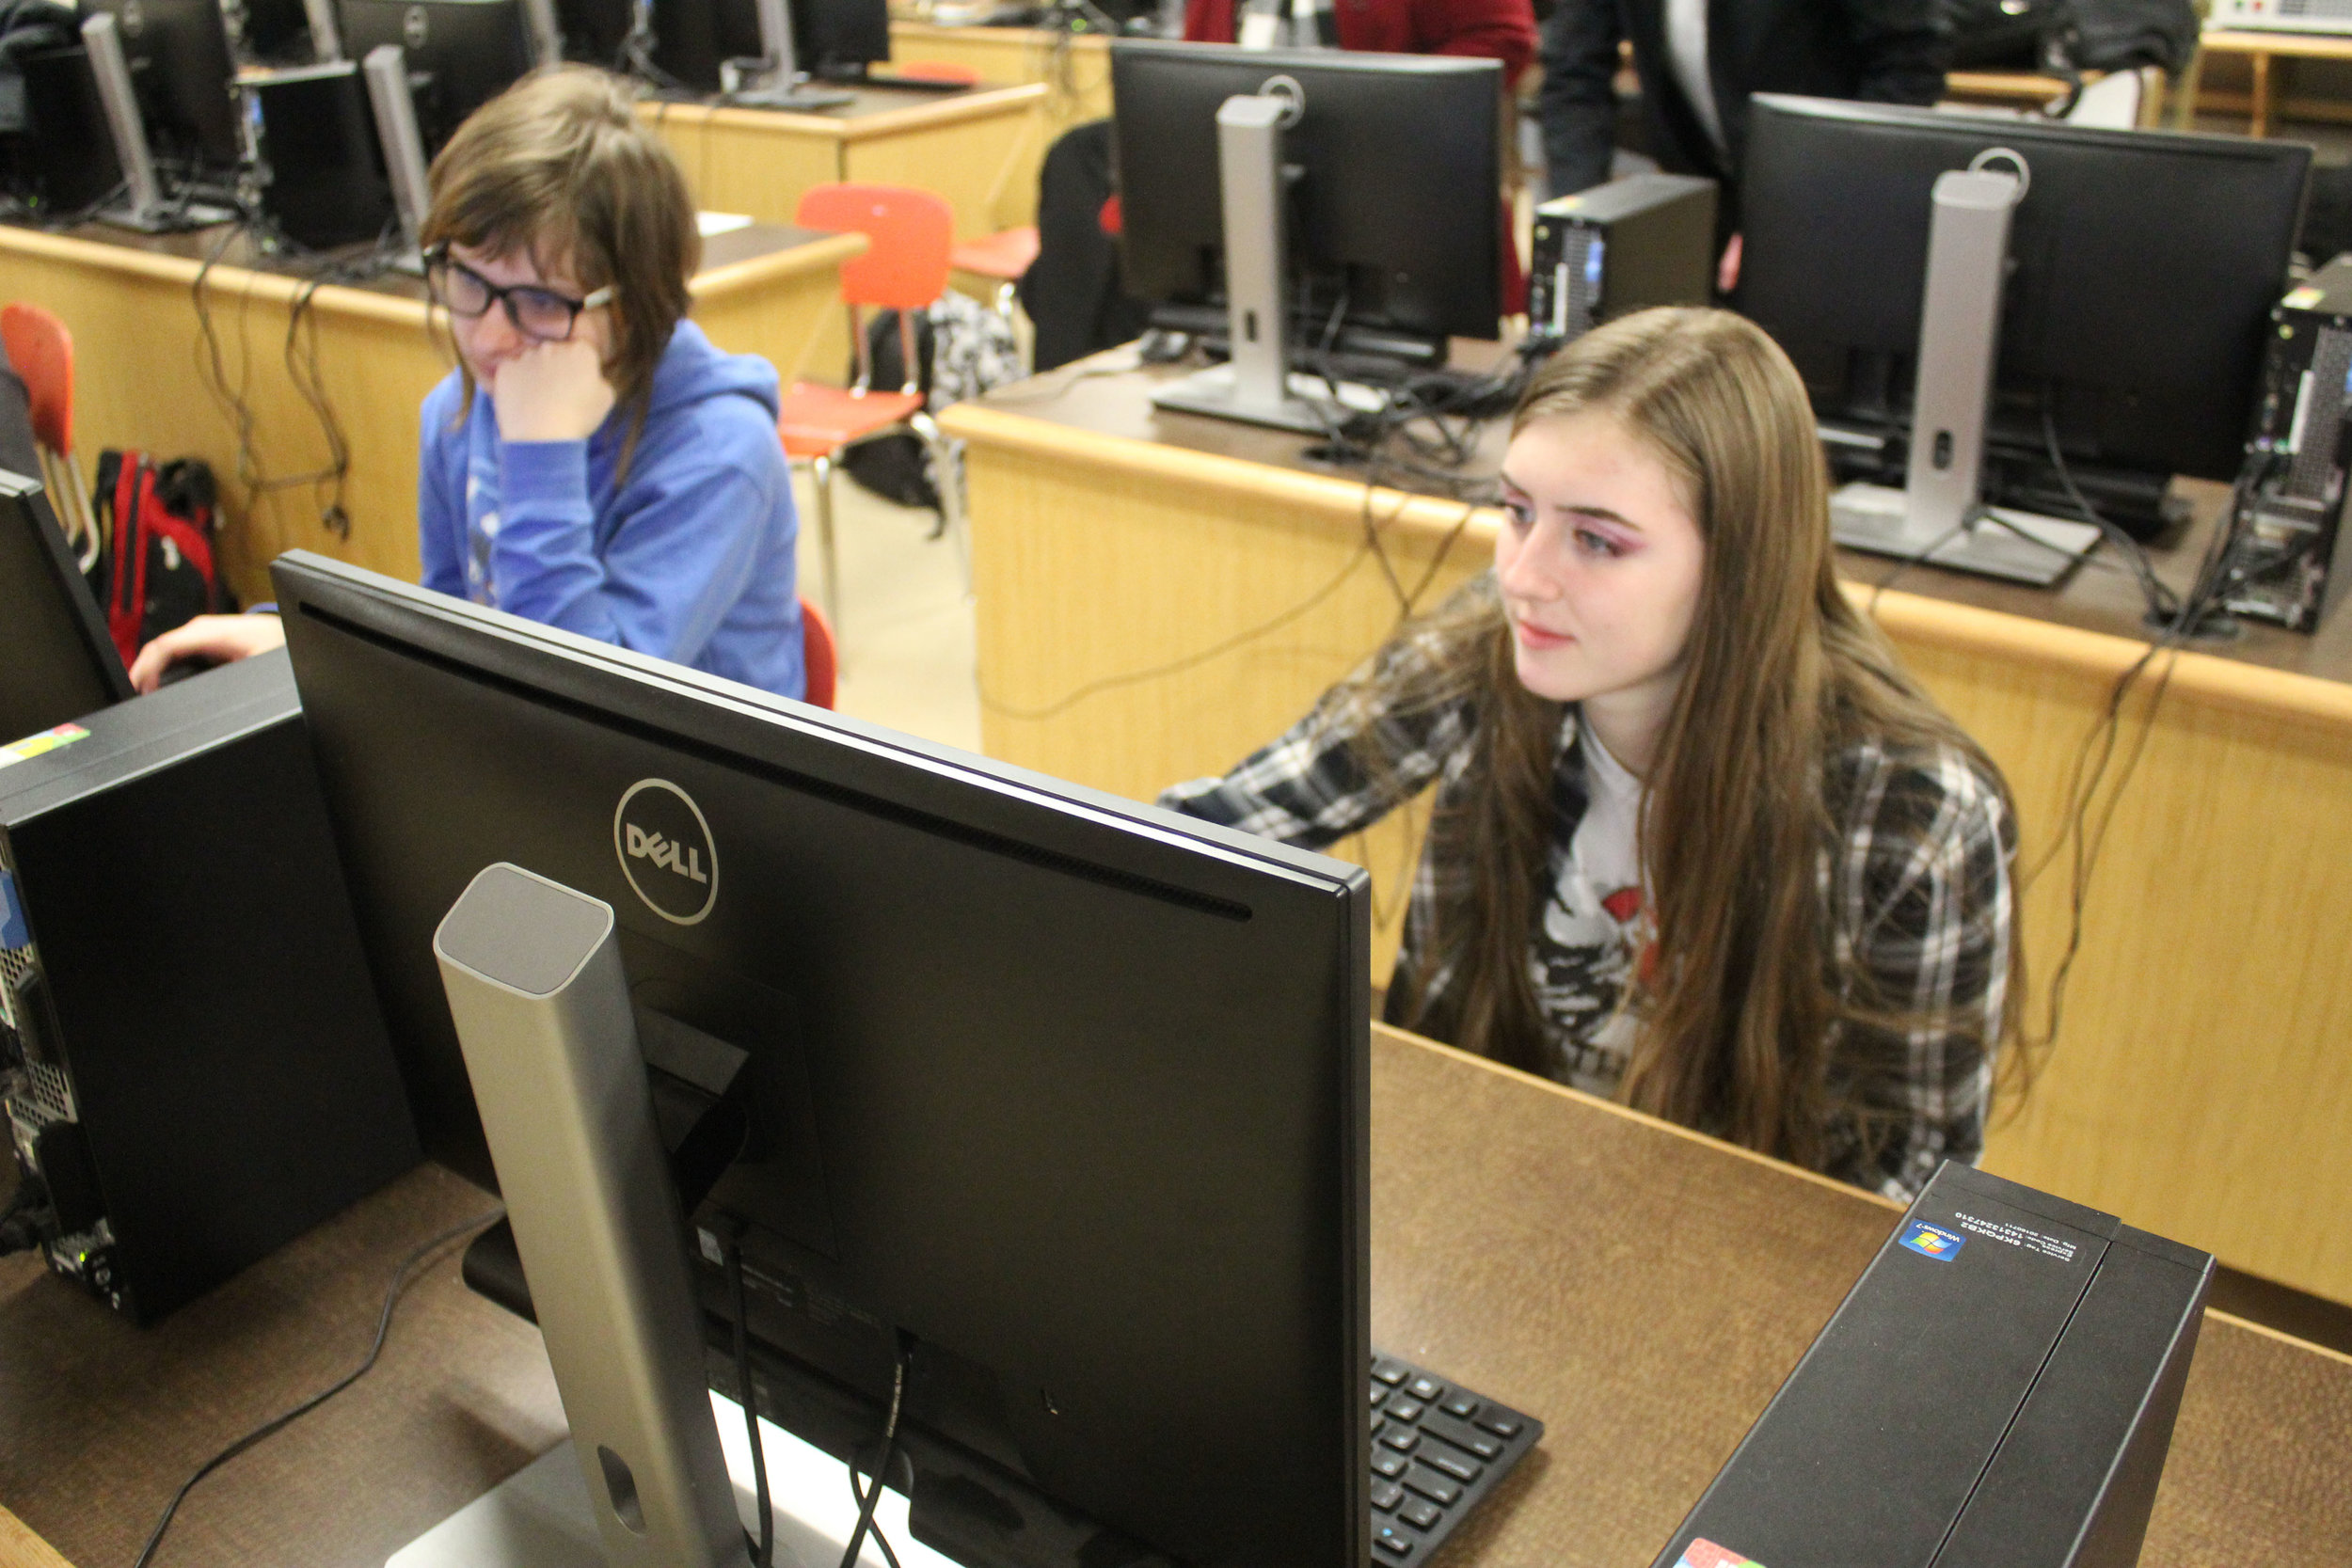 Kya and Harley working hard to finish up the FRC Journal and scheduling.